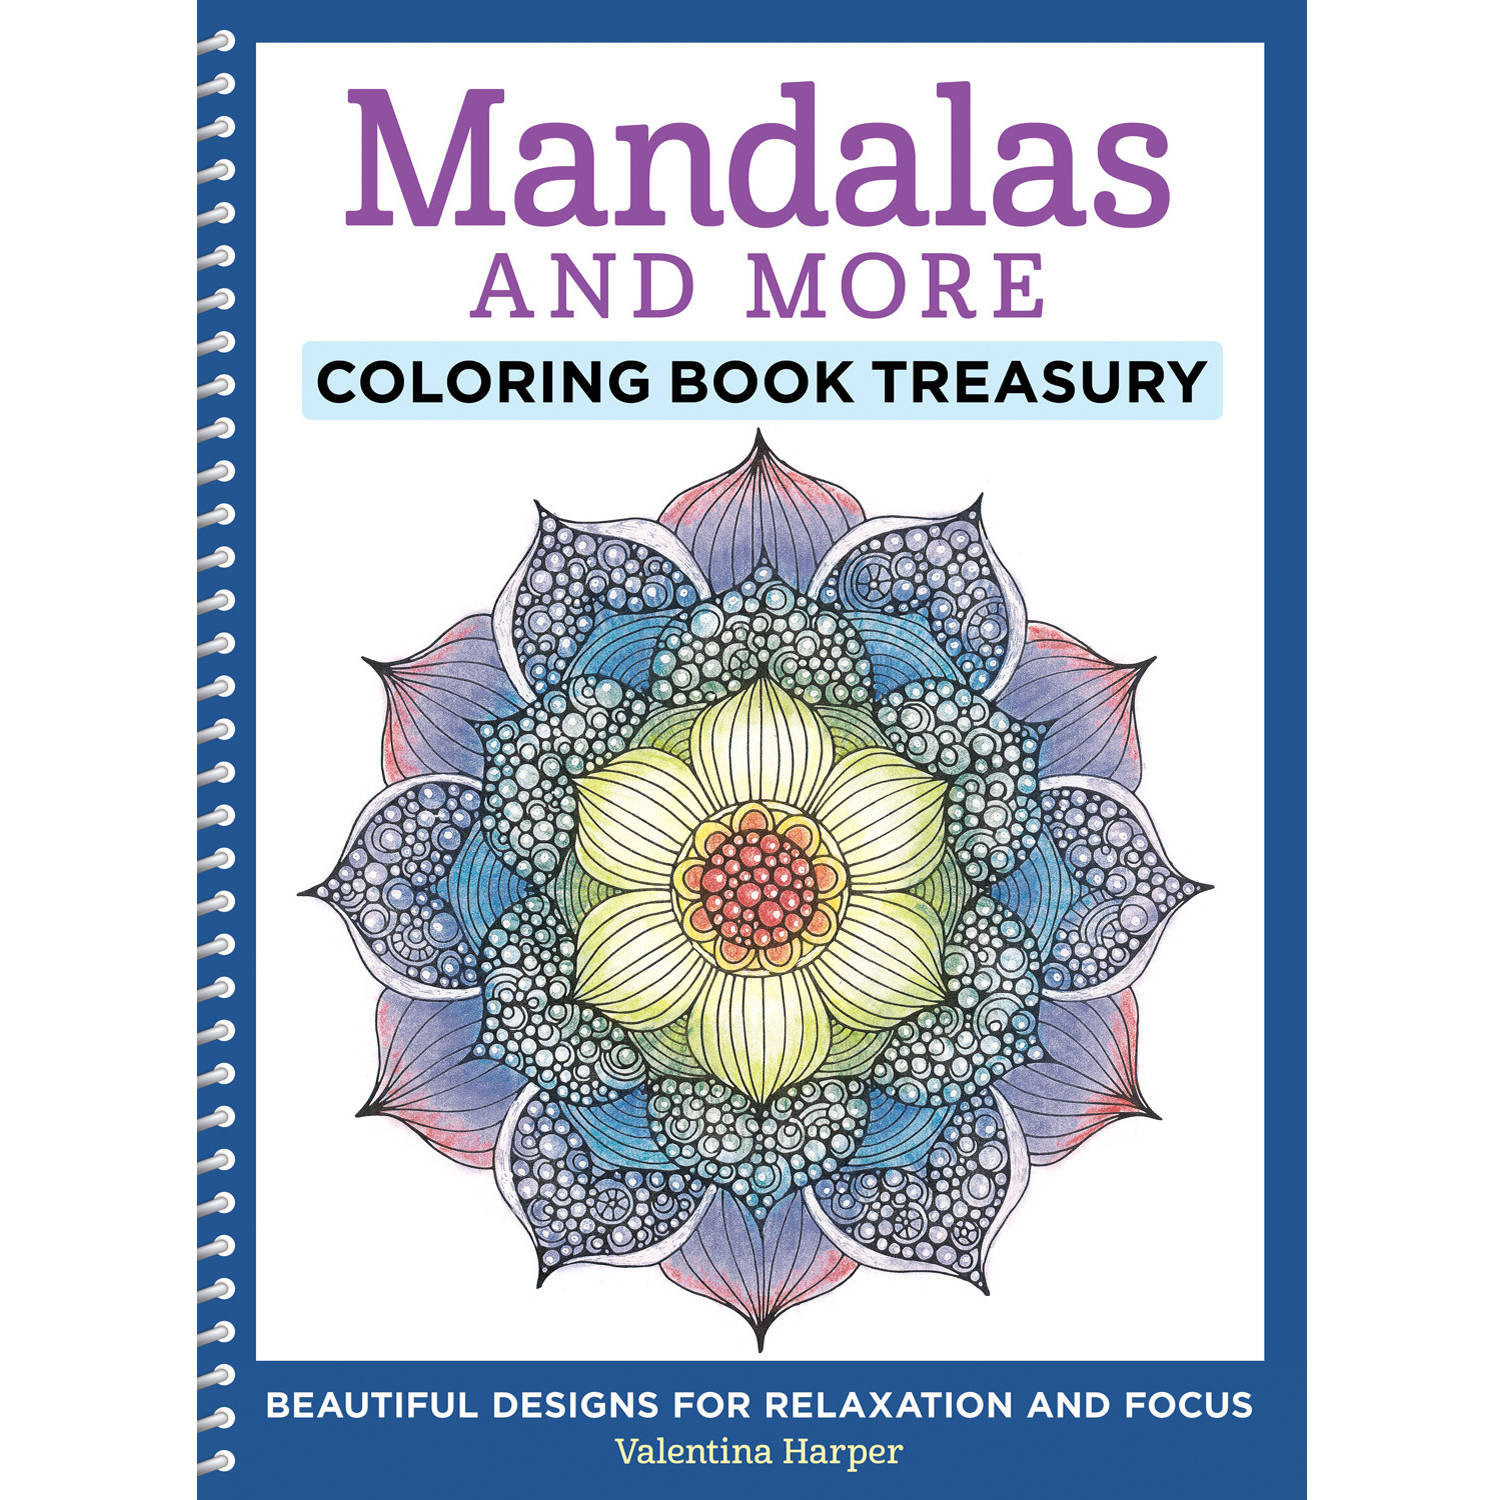 Mandalas and More Coloring Book Treasury